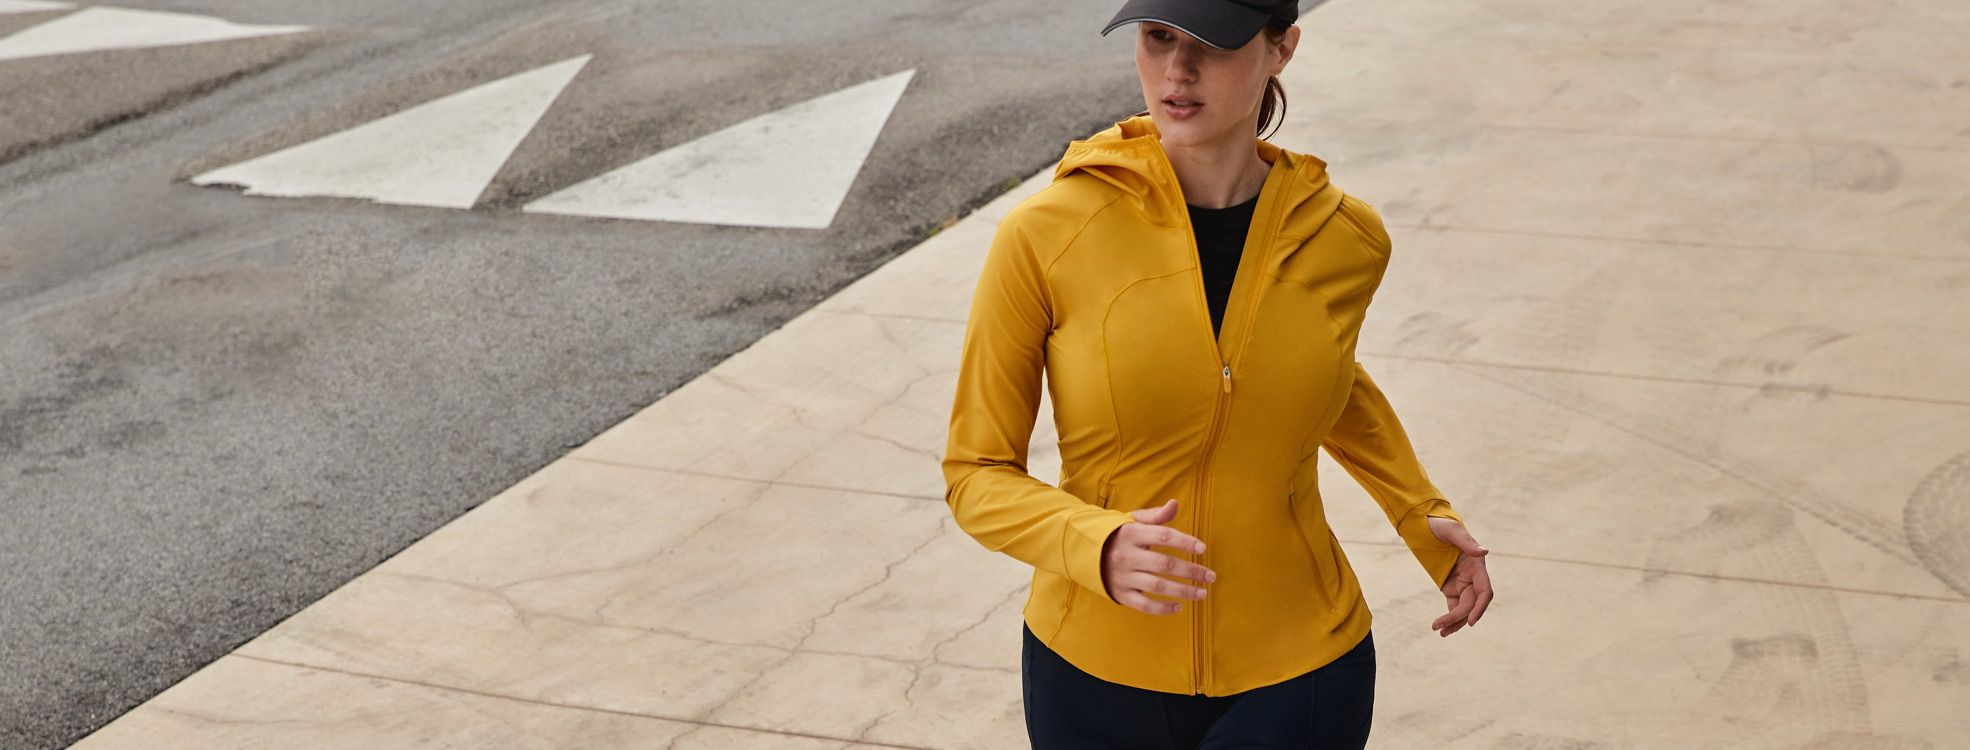 b183b45a4 Women's Jackets + Coats | lululemon athletica